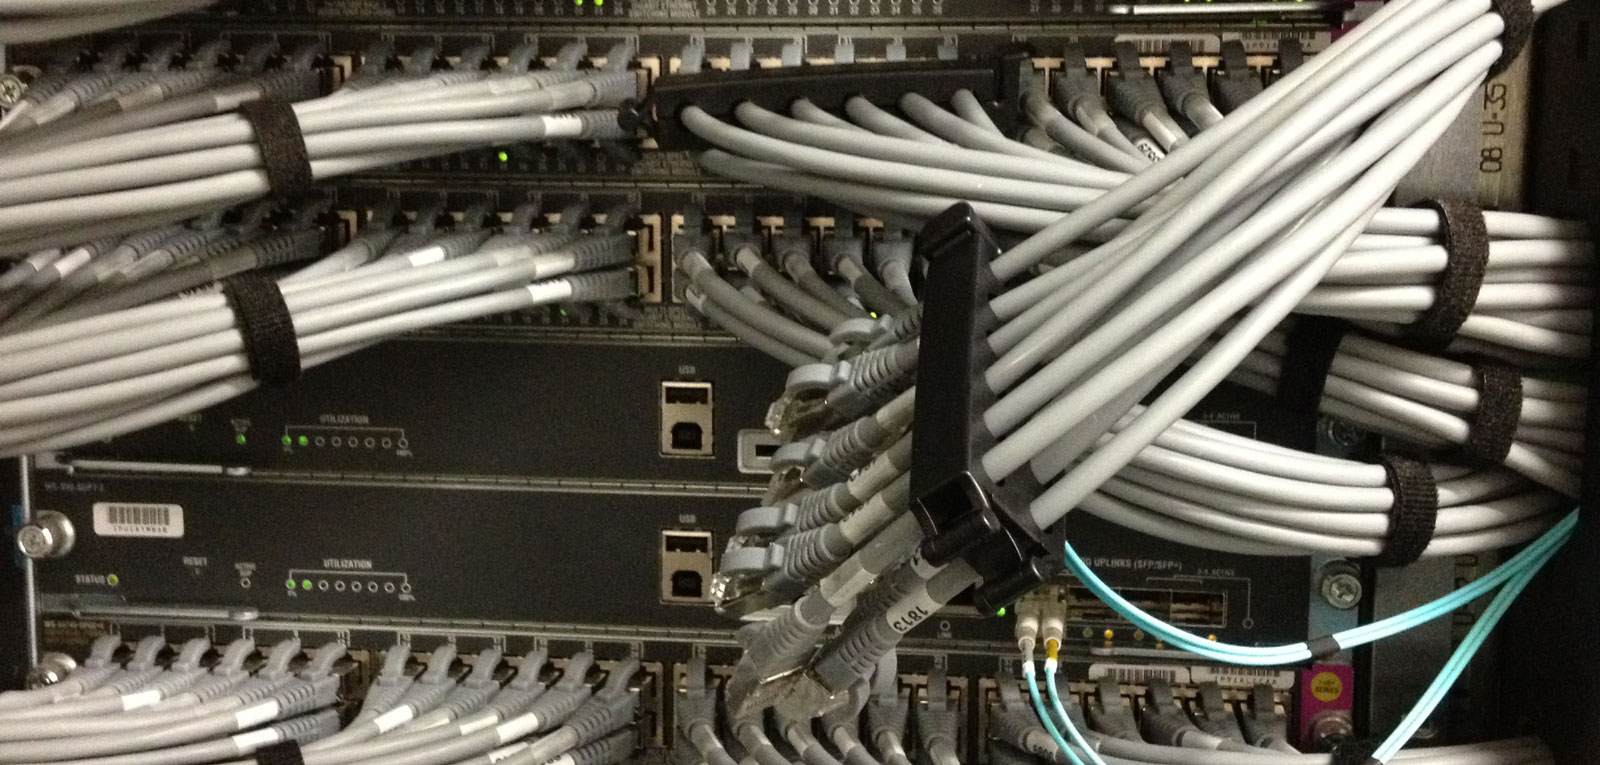 Network Cable Management Tools From Sergeantclip Worldwide Shipping Home Wiring